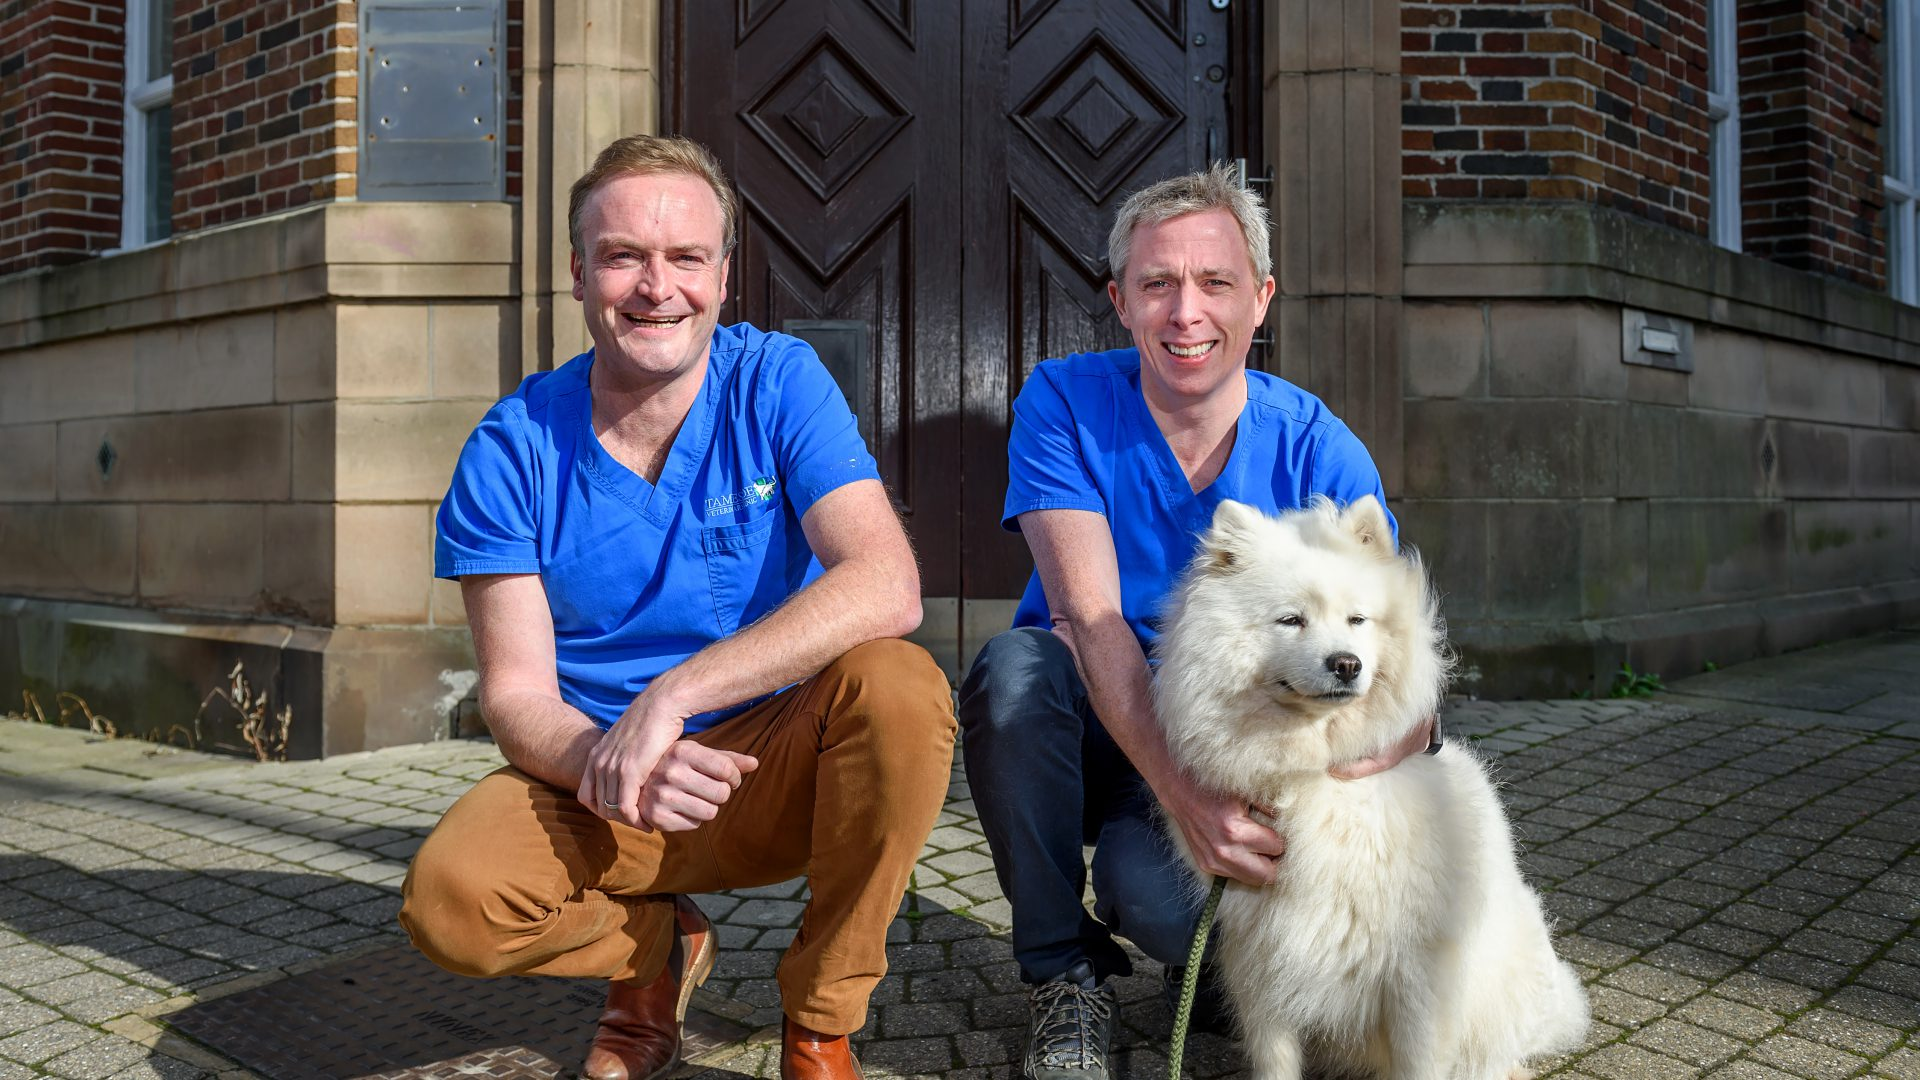 From pounds to hounds! Greater Manchester vet practice expands